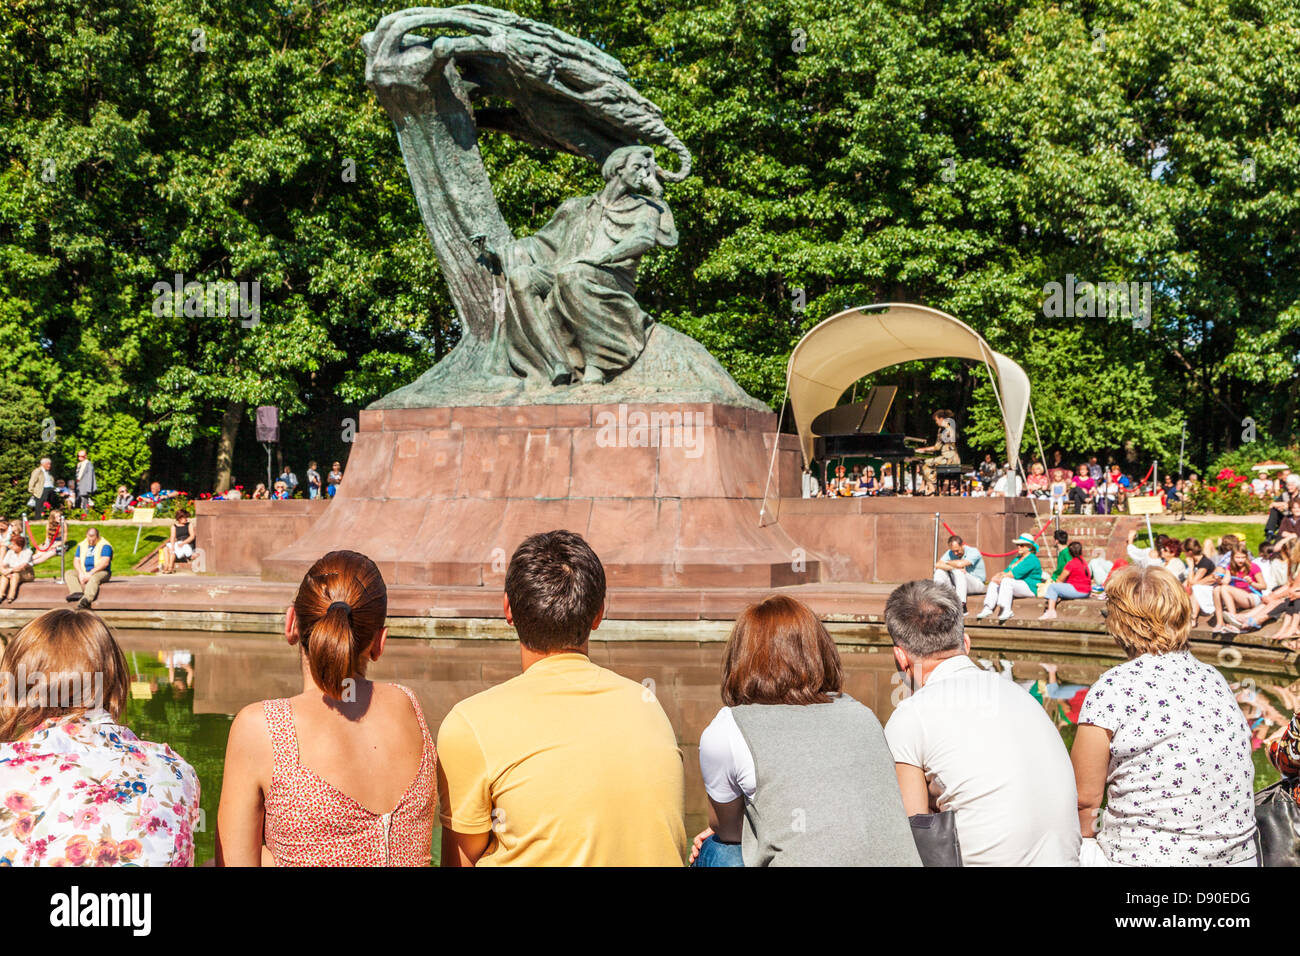 A Sunday afternoon piano recital beneath Chopin's statue in Lazienki Park, Warsaw. - Stock Image